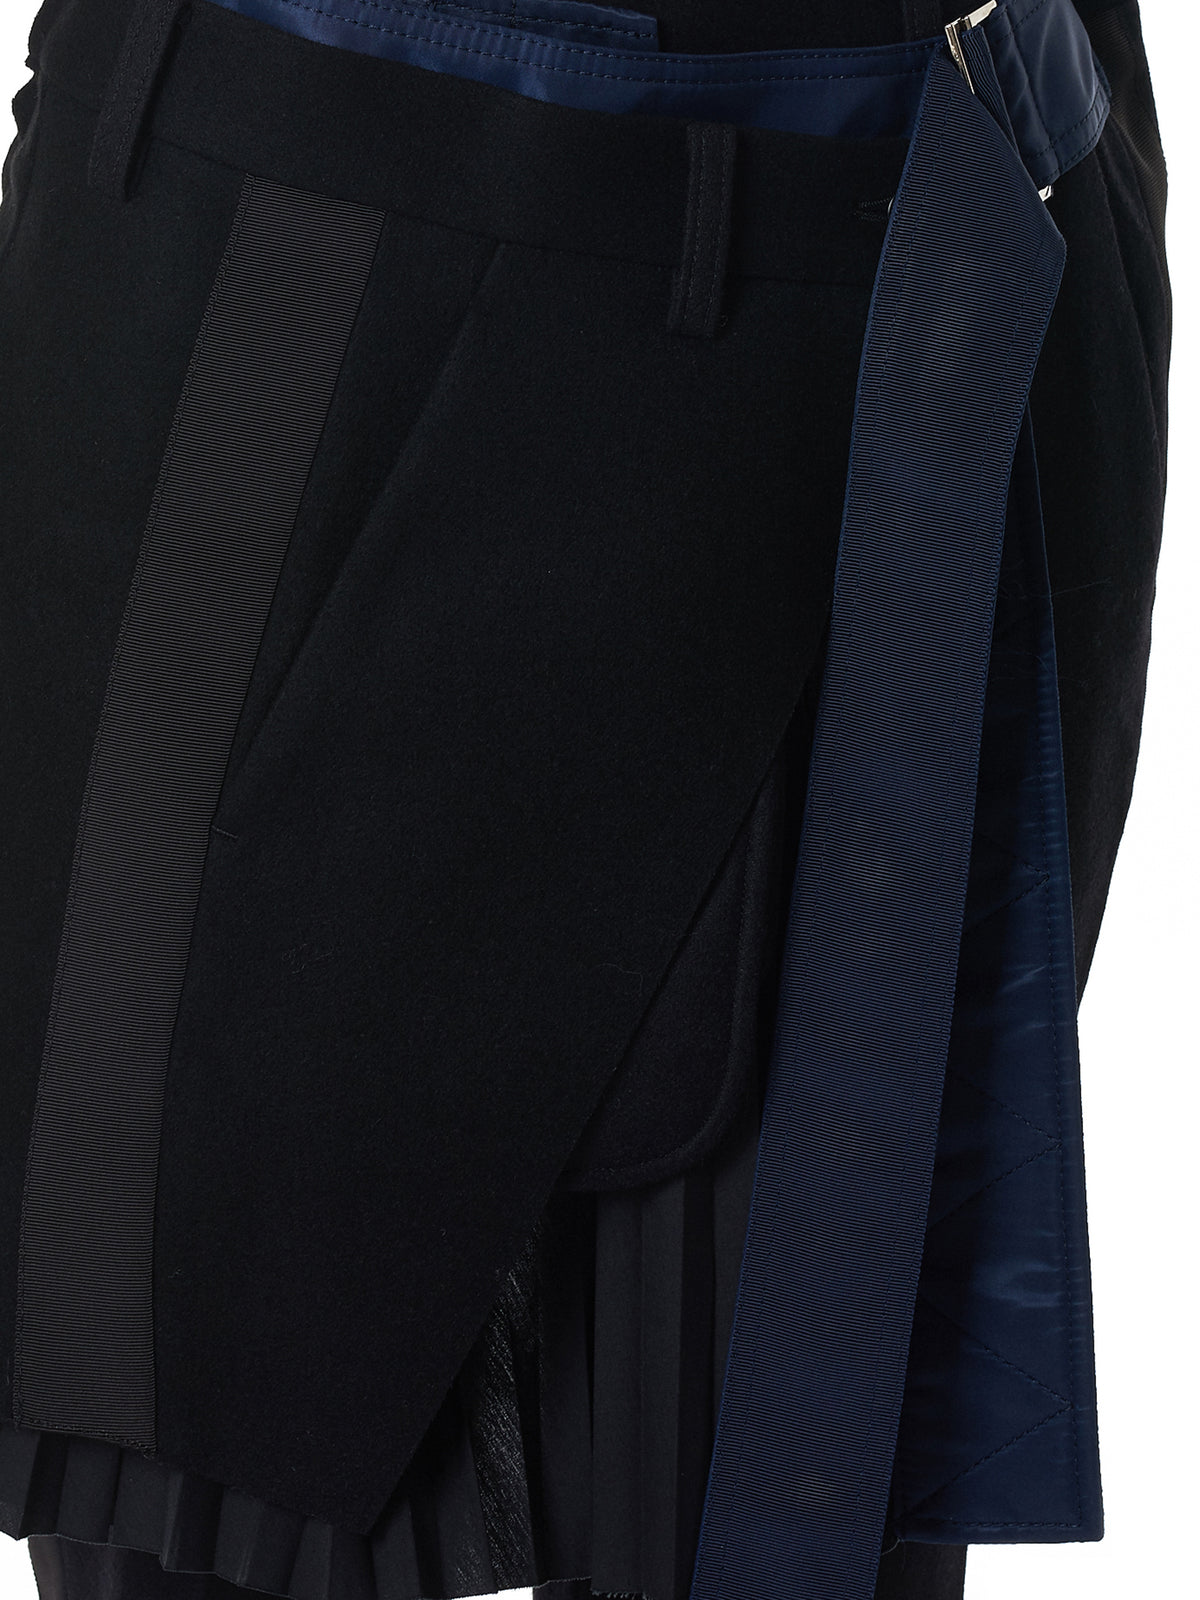 Sacai Skirt Trousers - Hlorenzo Detail 2